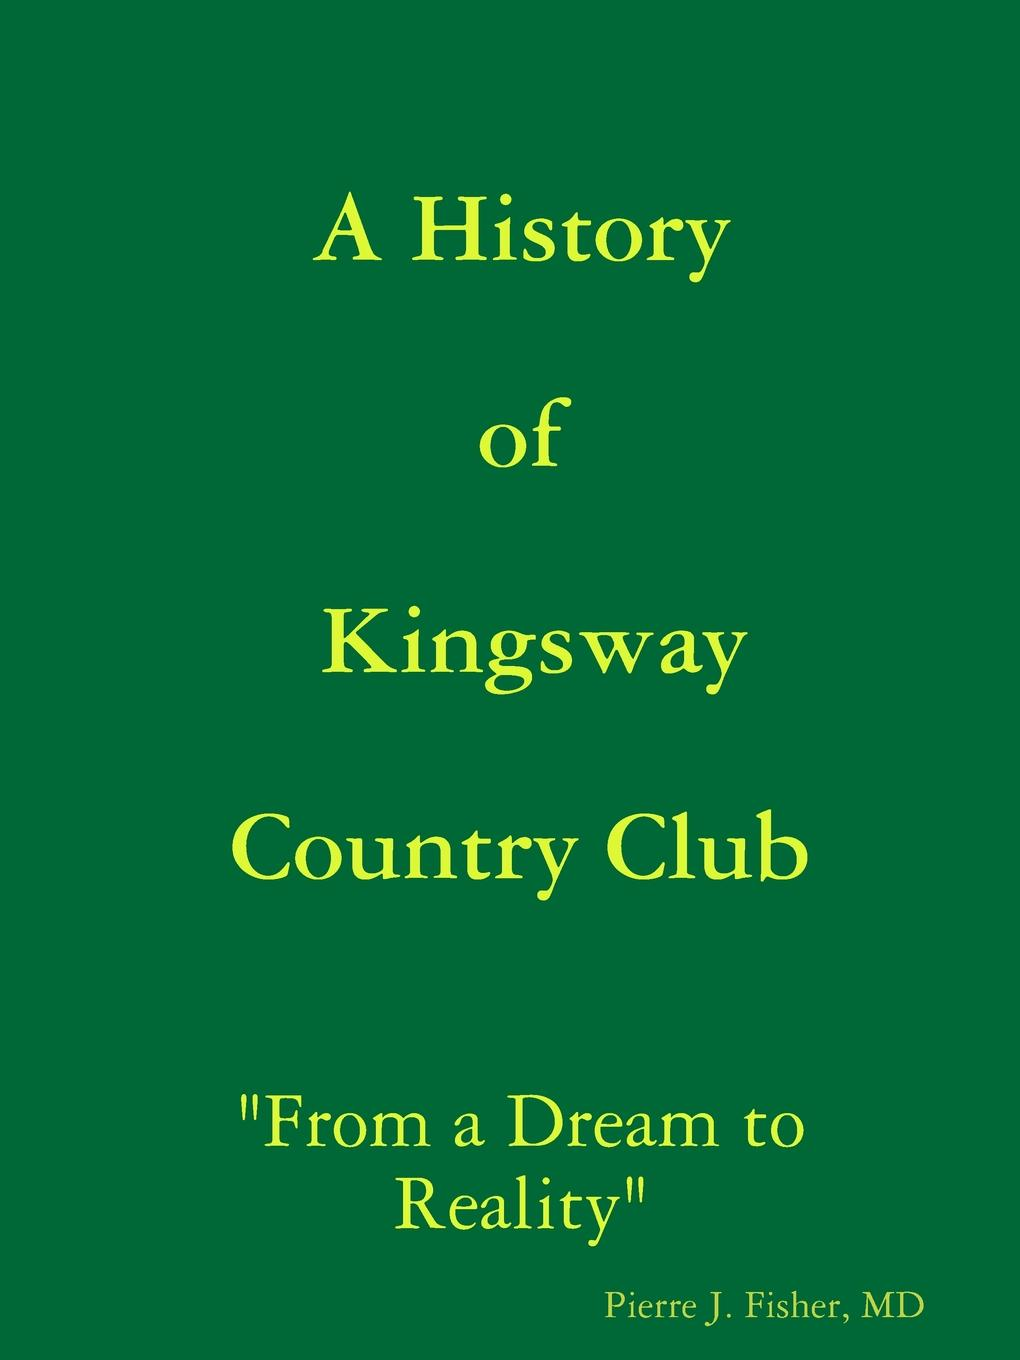 MD Pierre J. Fisher A History of Kingsway Country Club j a w wadmore collections for a parochial history of barrow gurney